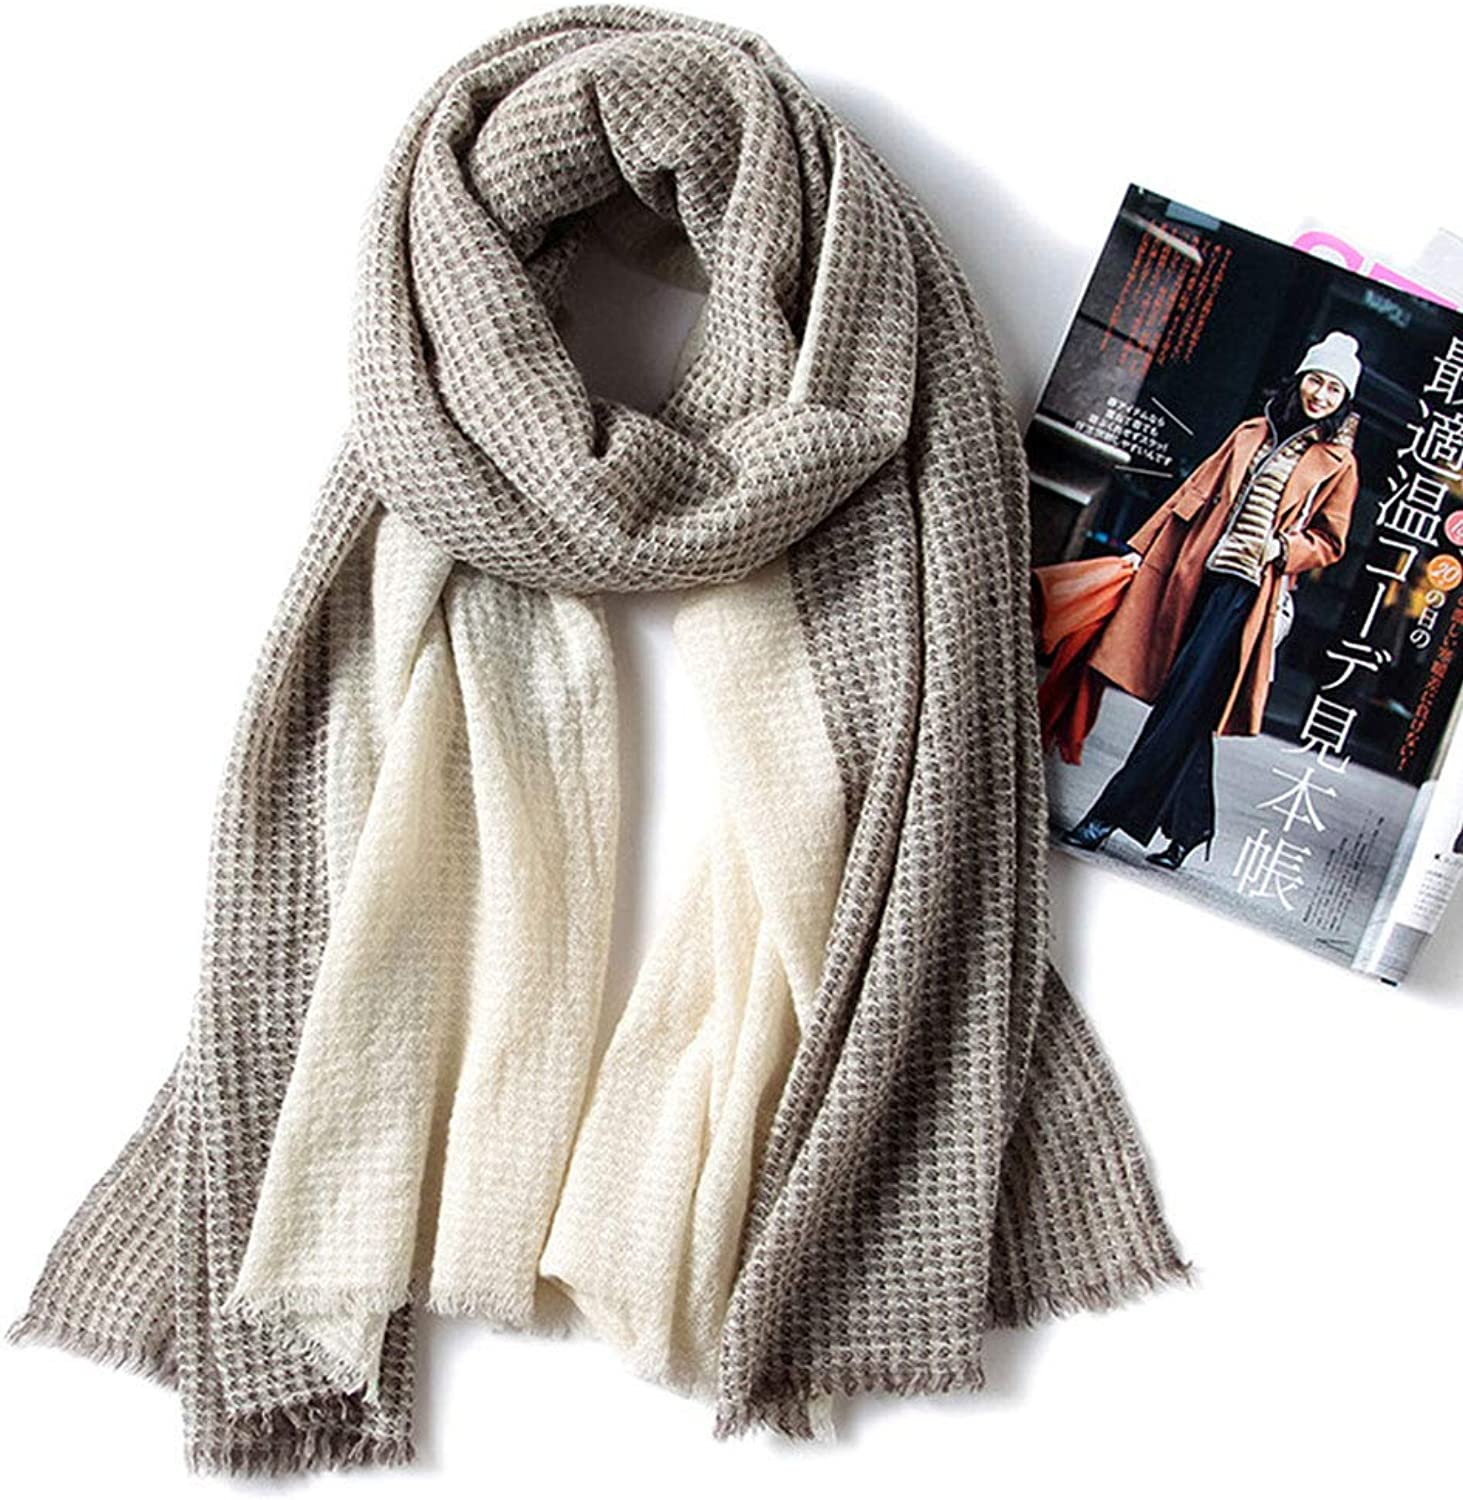 HUIFANG New Spring and Autumn Winter Warm White Cashmere Classic Double Shawl Oversized Ladies Long Section 70  200CM A (color   Brown, Size   100  210CM)